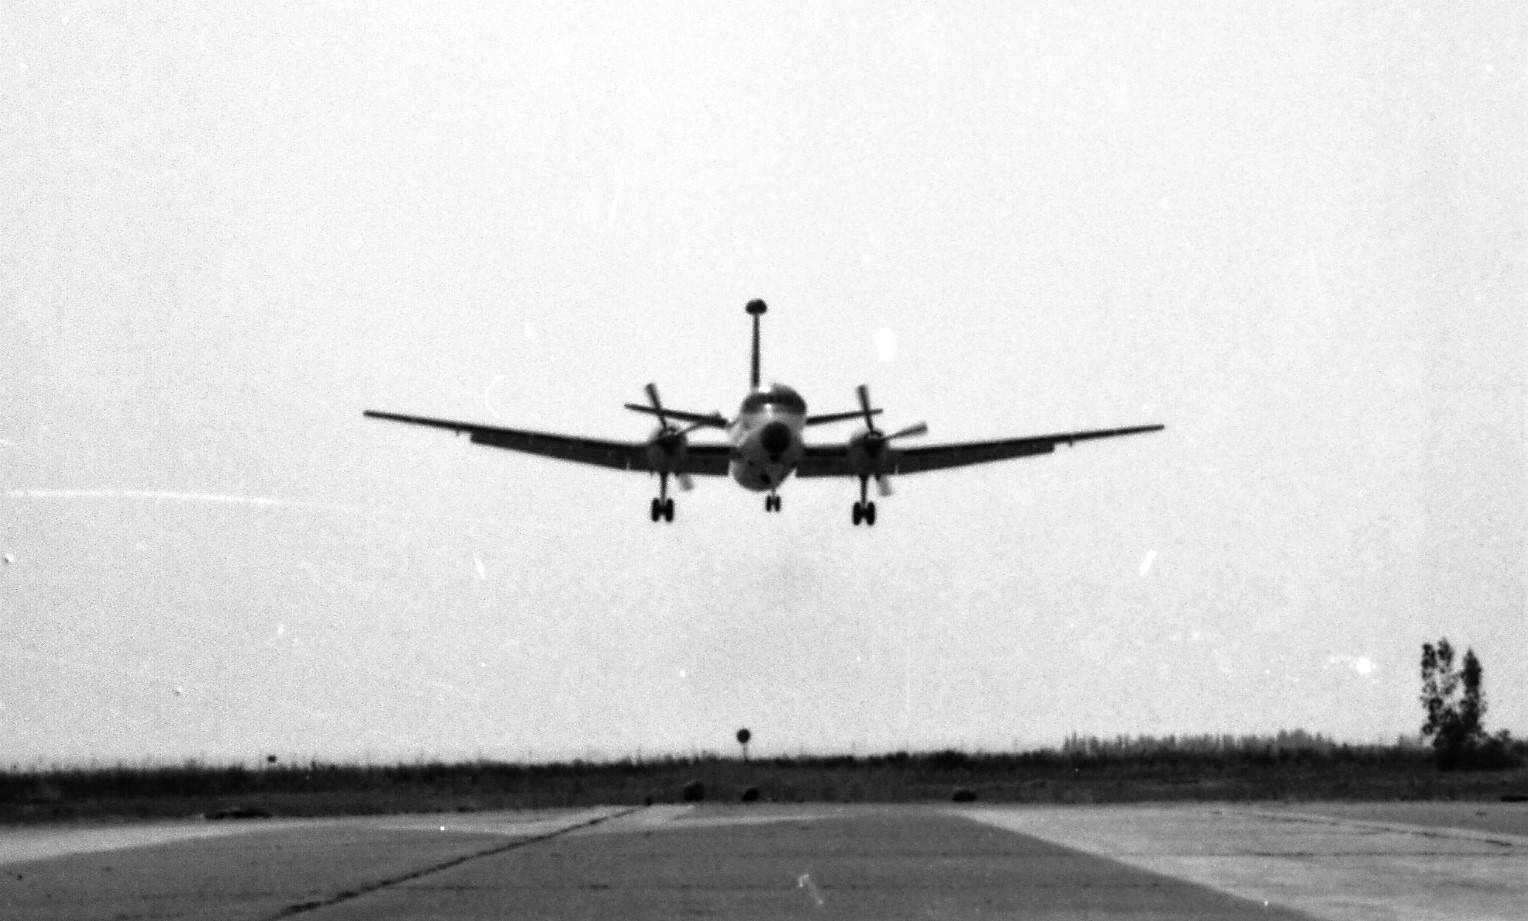 The aviationist the italian br 1150 atlantic has completed its the first atlantic mm40010841 70 about to land for the first time at sigonella at the end of its delivery flight on jun 27 1972 all images itaf kristyandbryce Image collections